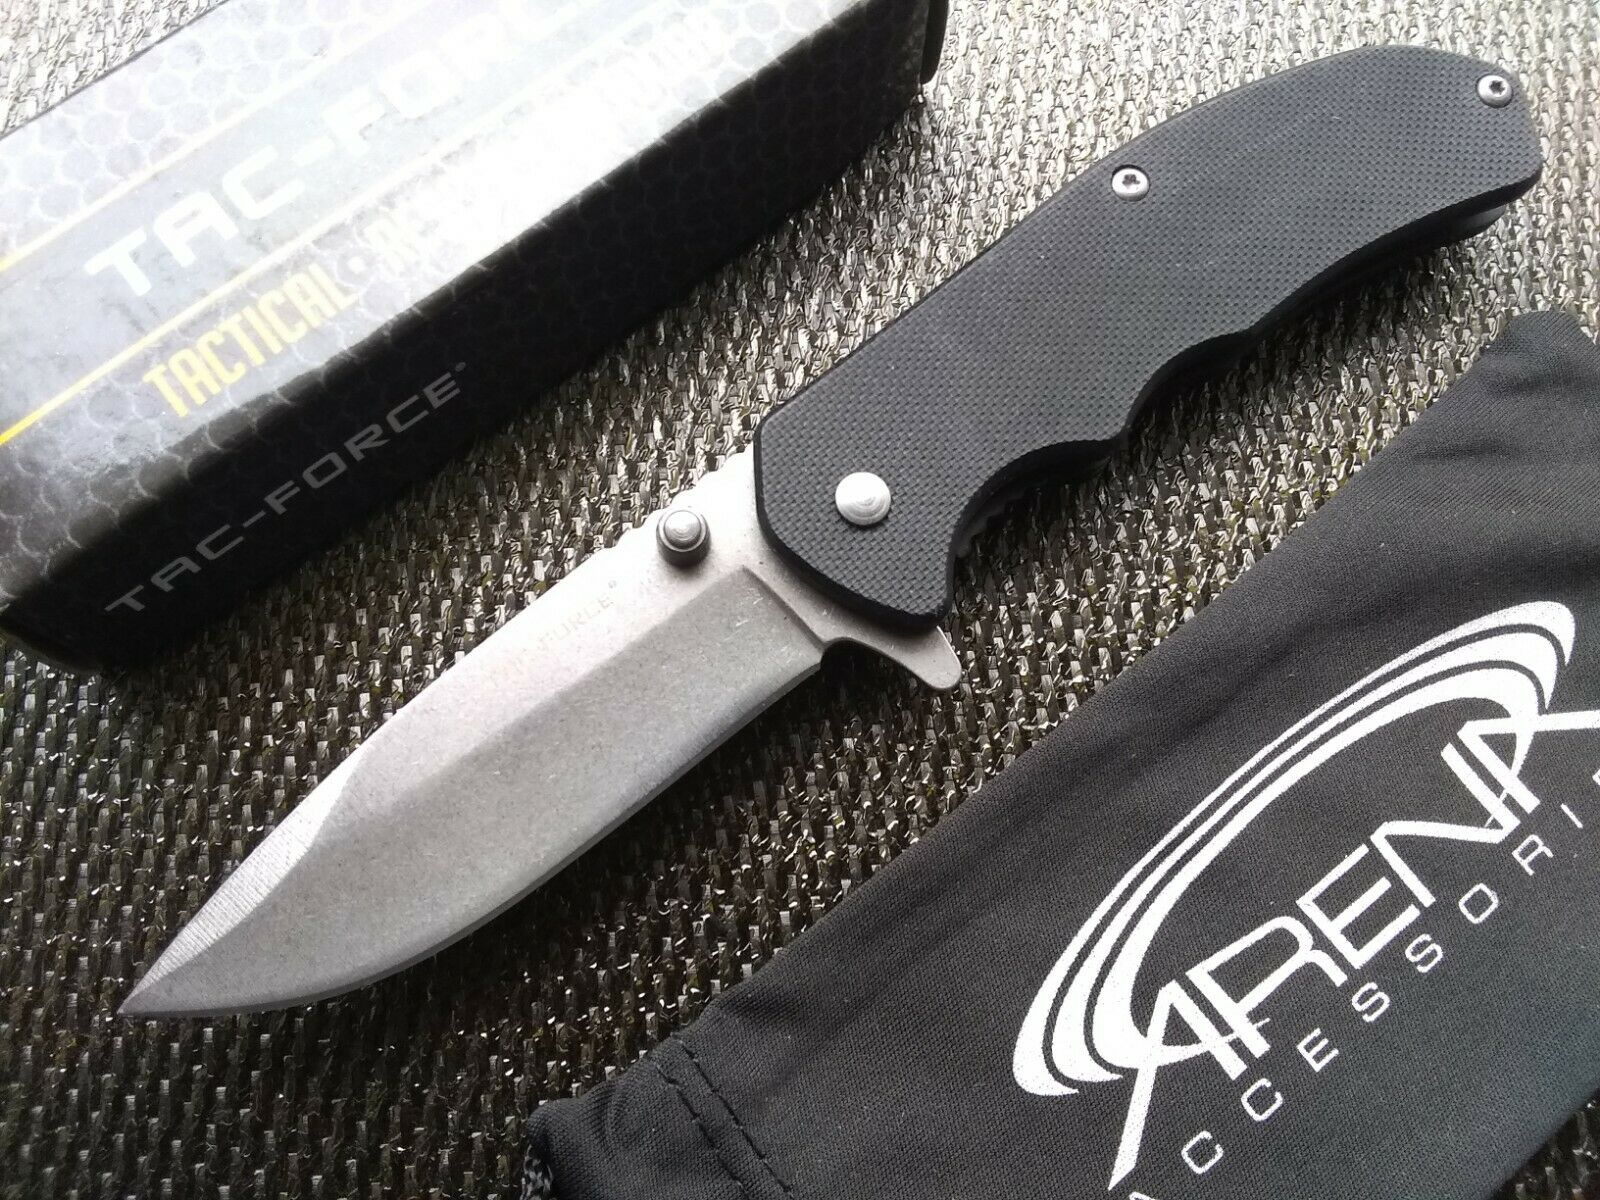 Small Stonewash EDC Flipper Pocket Knife Speed Assist Opening Grippy G10 Scales